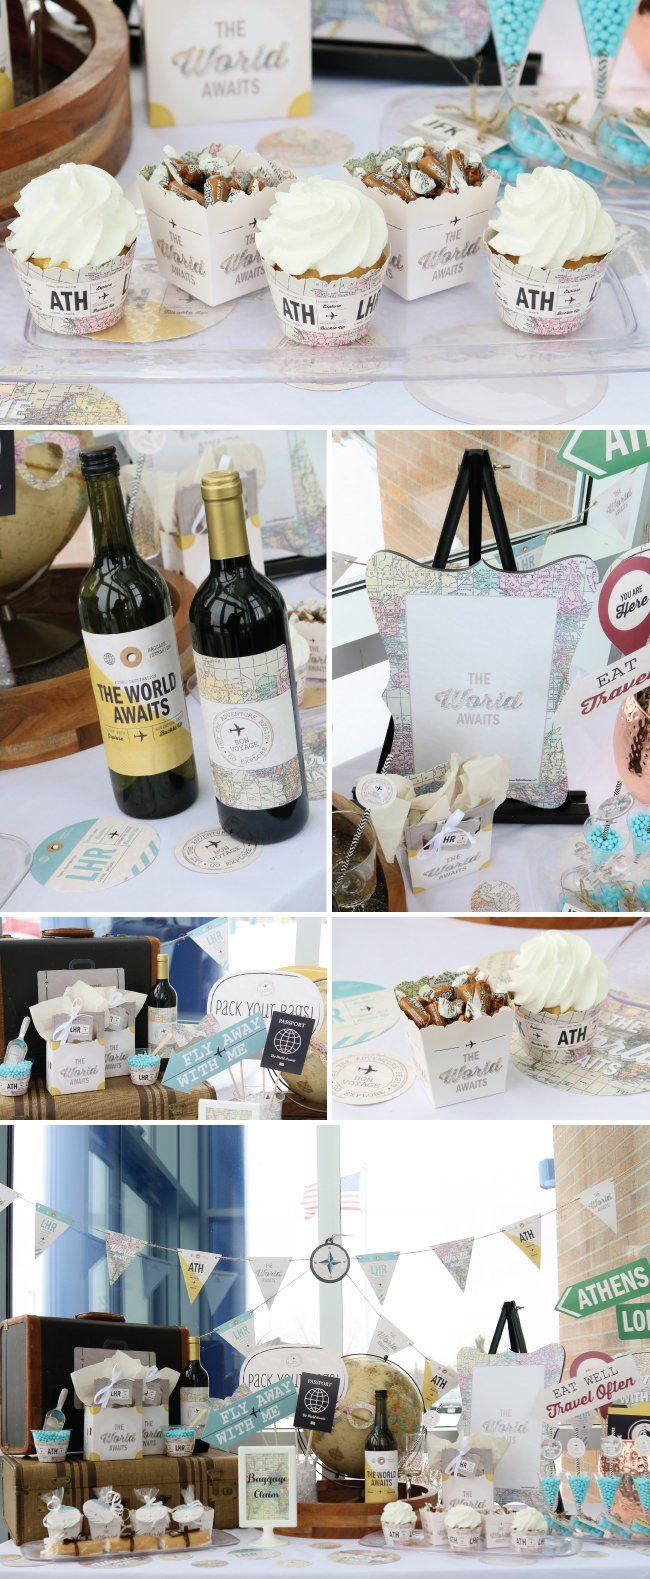 the world awaits vintage travel theme party ideas - perfect for